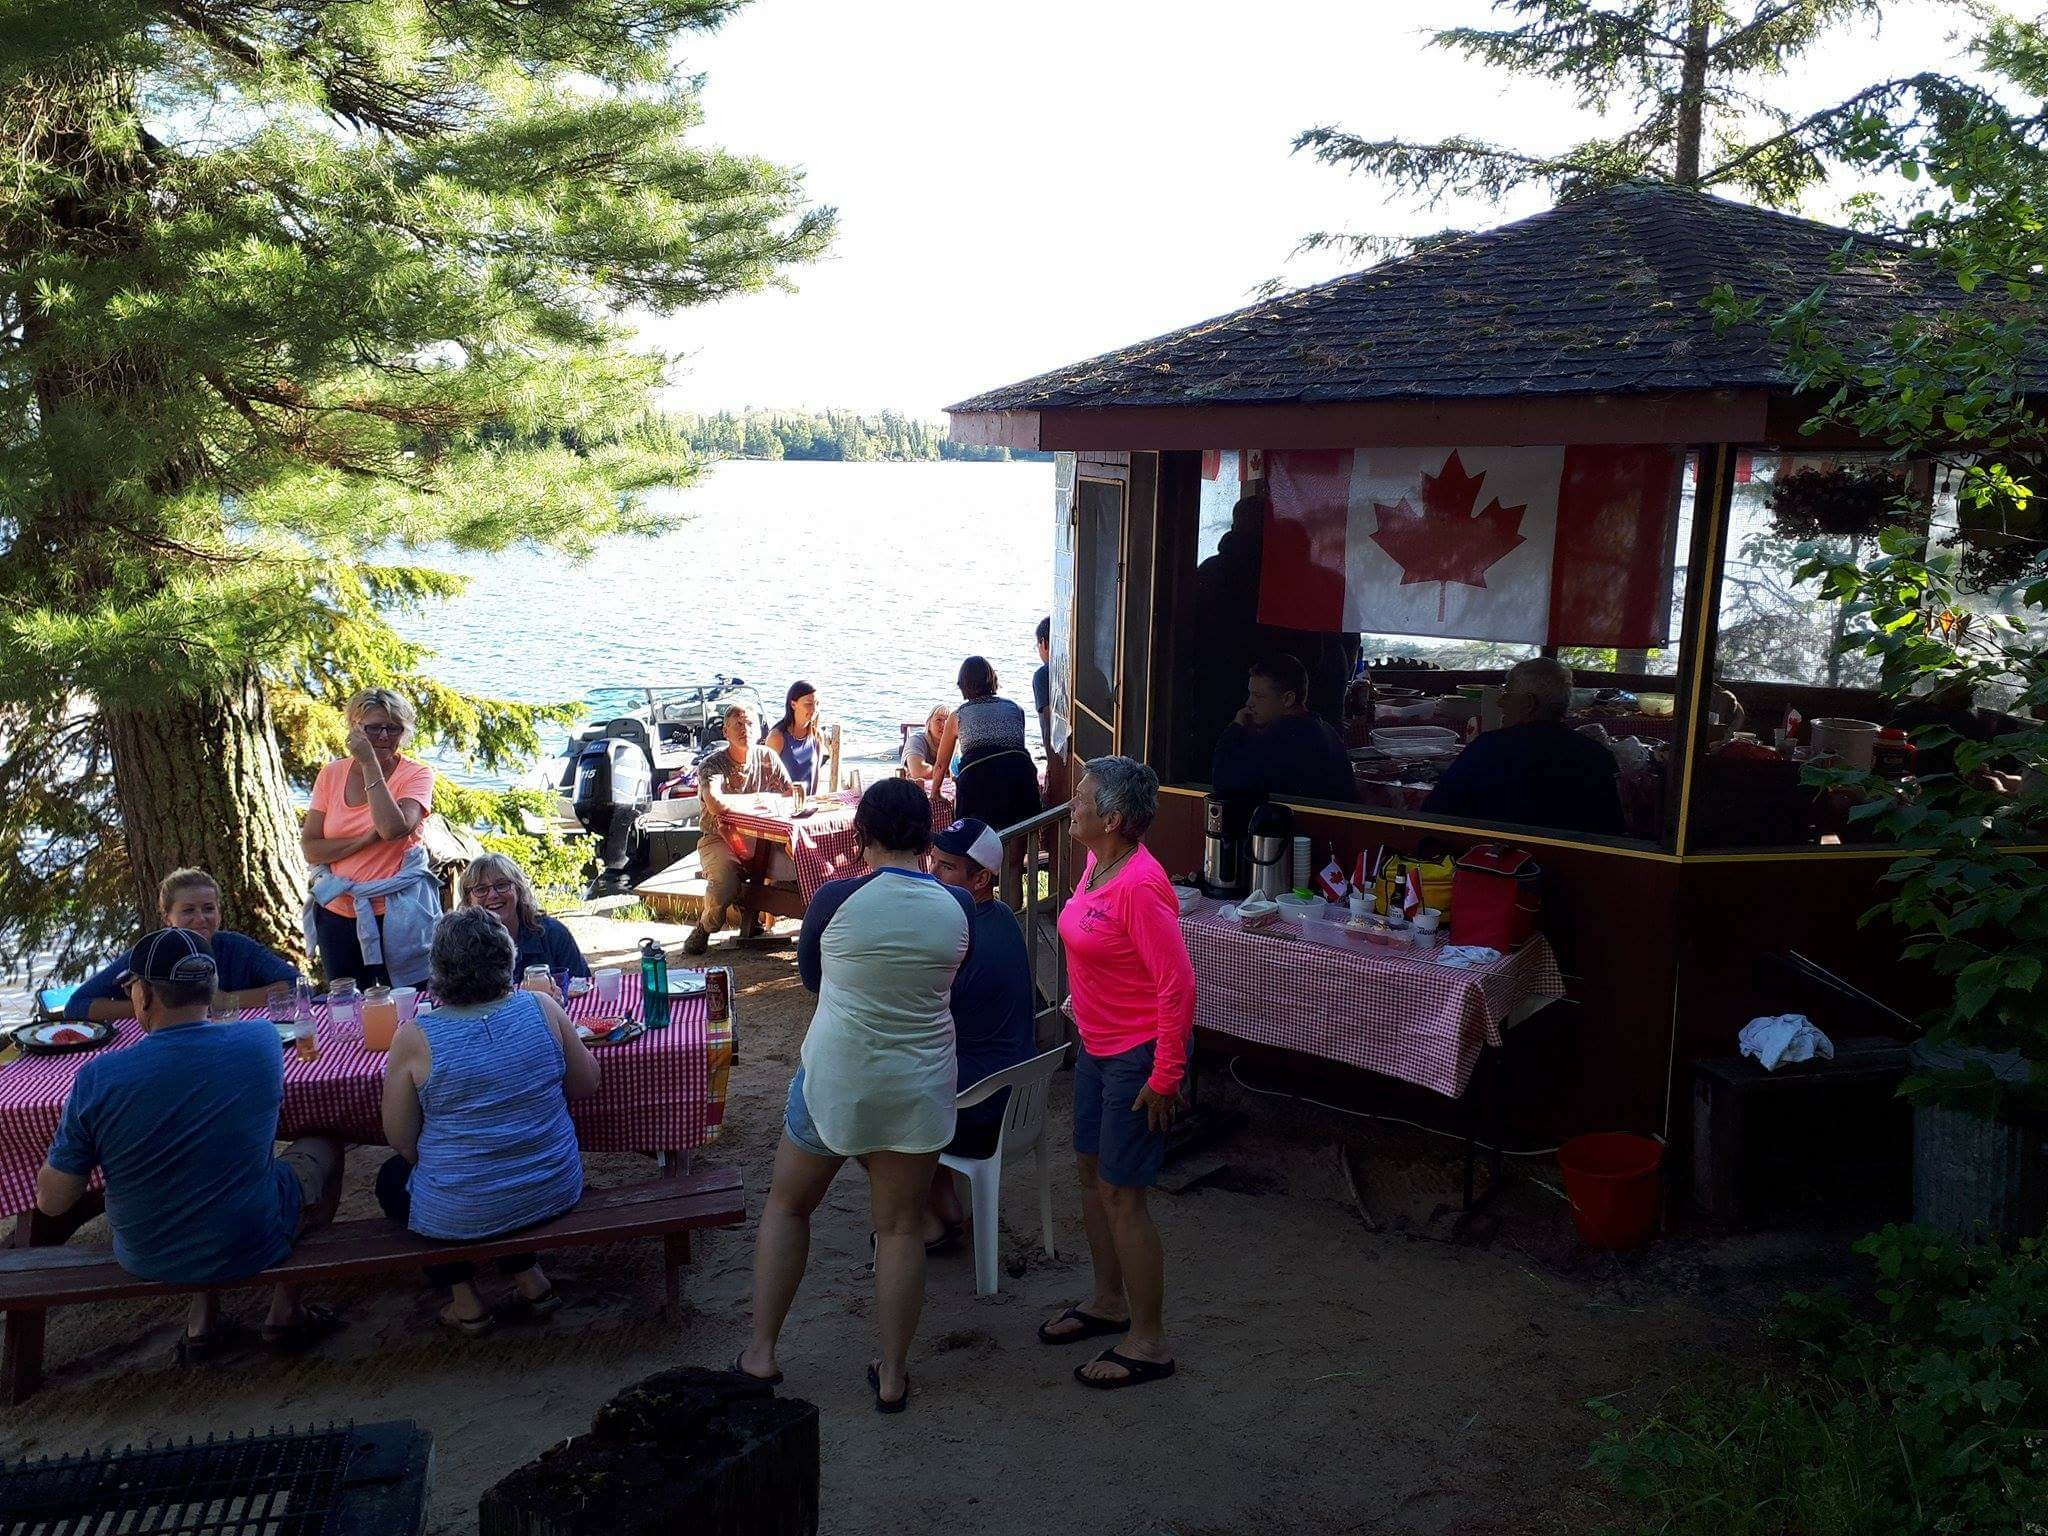 Good food, good friends... a nice celebration of Canada's 150th.